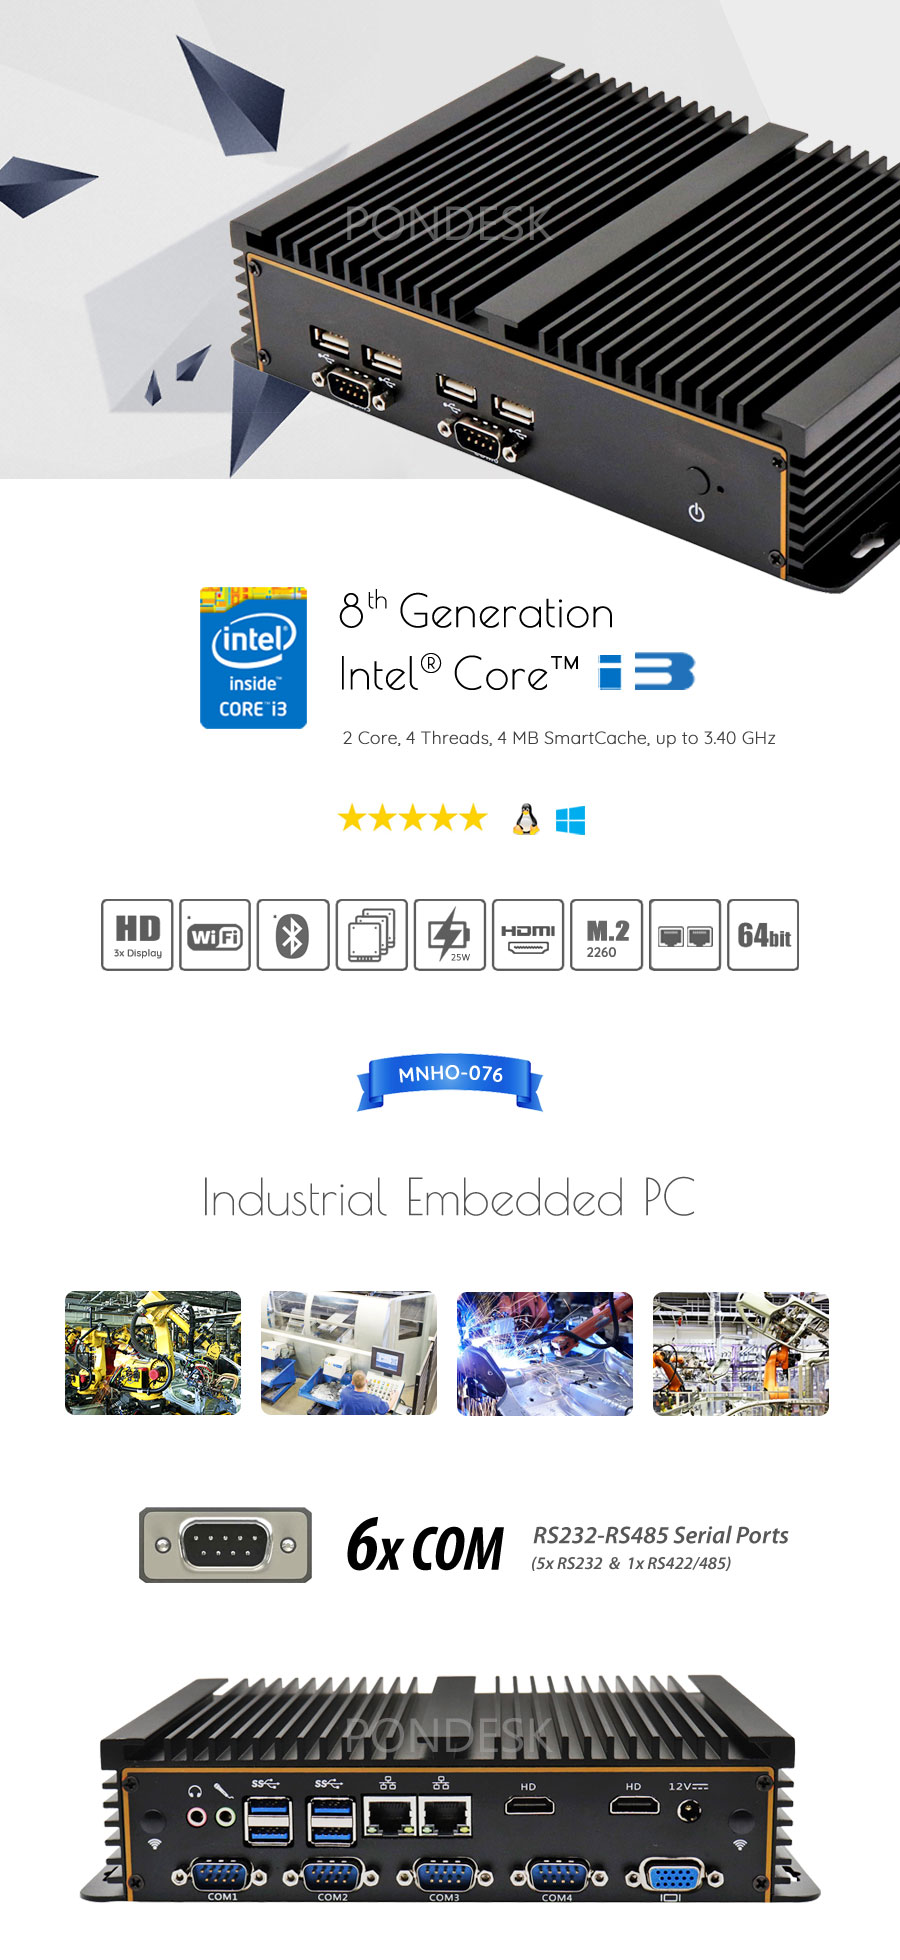 8th Gen Intel i3-8130U 6 COM 3 Display Fanless Industrial PC - MNHO-076 | Image